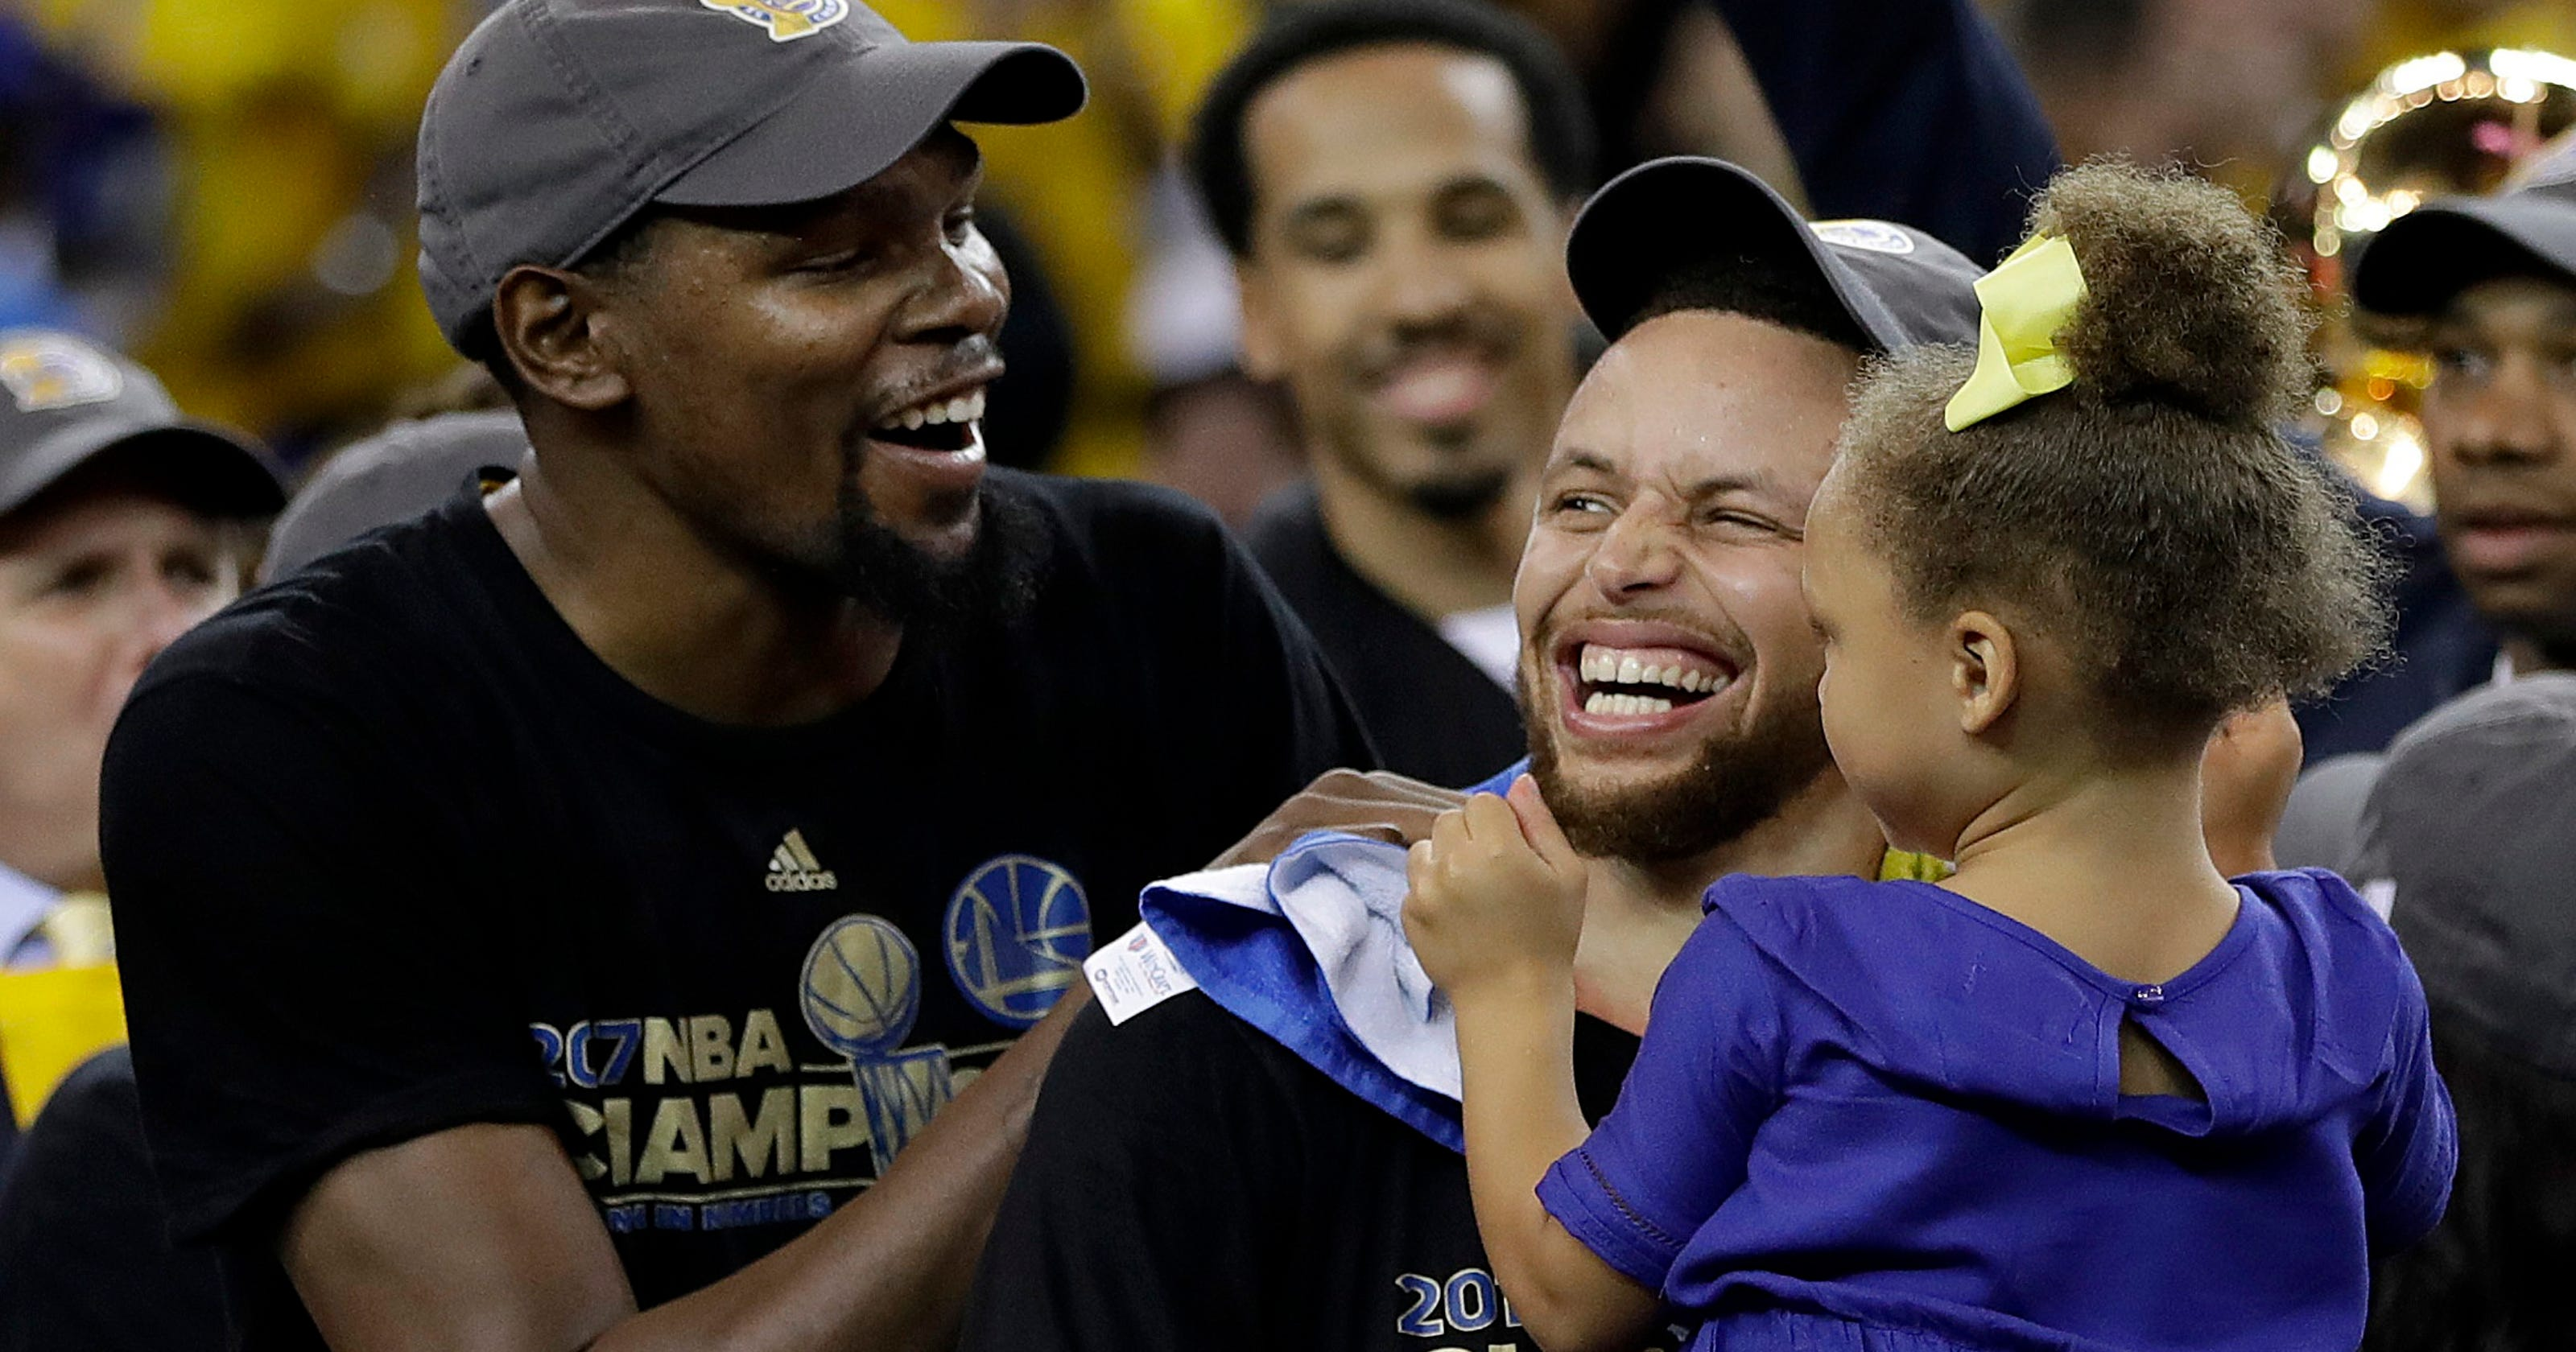 f53f94e94de Fans need to know  What did Kevin Durant say to Steph Curry